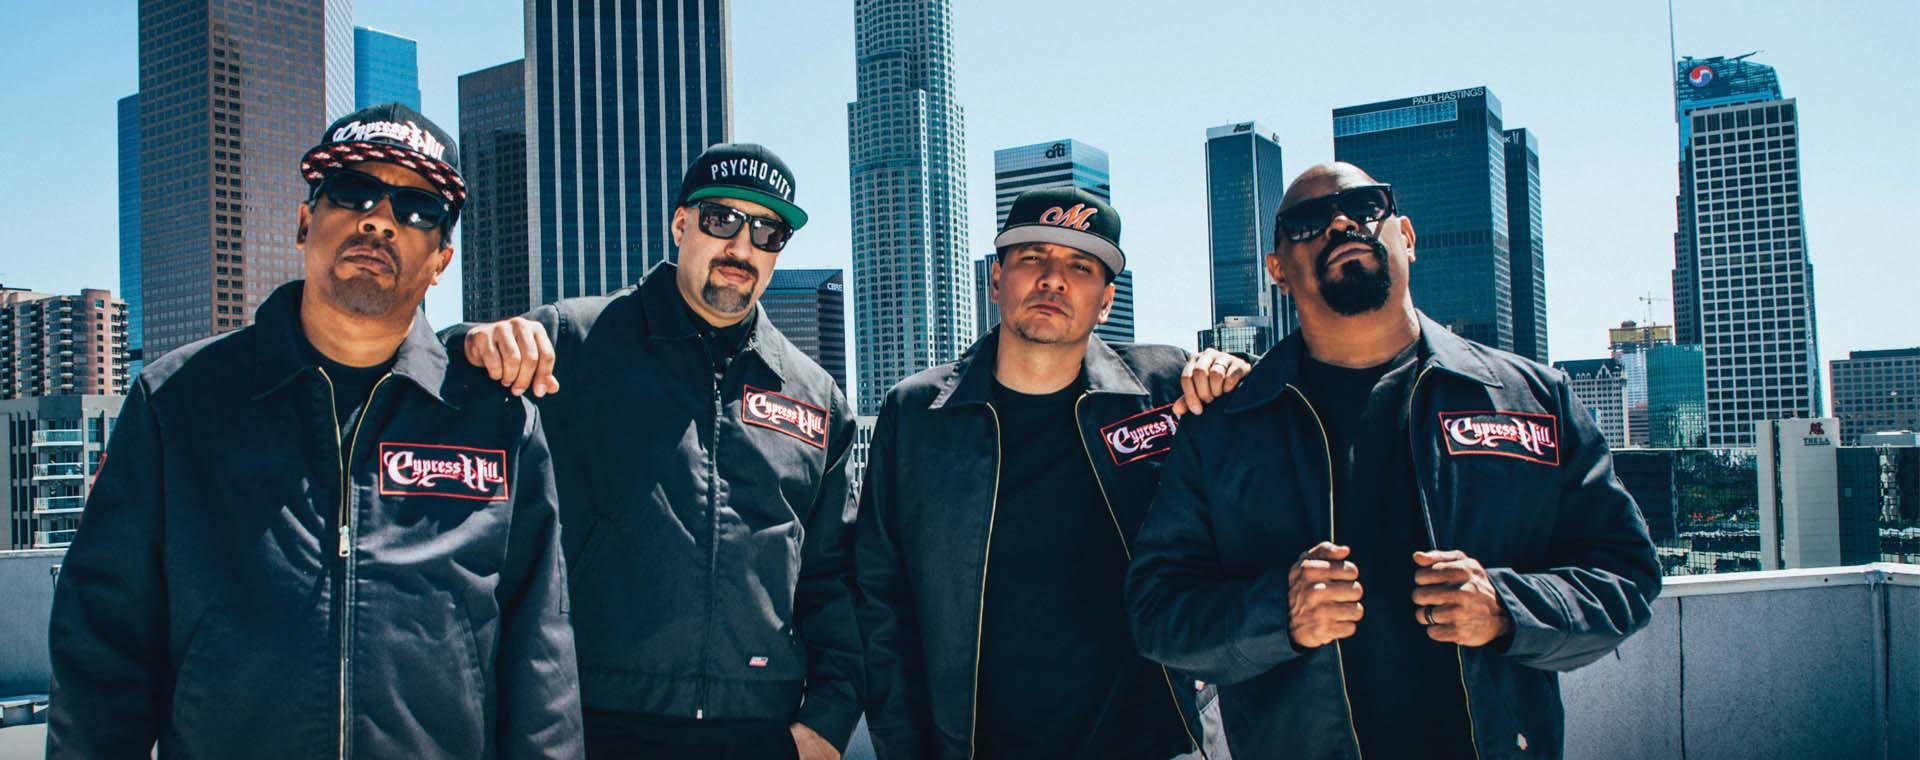 LATEST ISSUE <br><b>Cypress Hill</b></br>